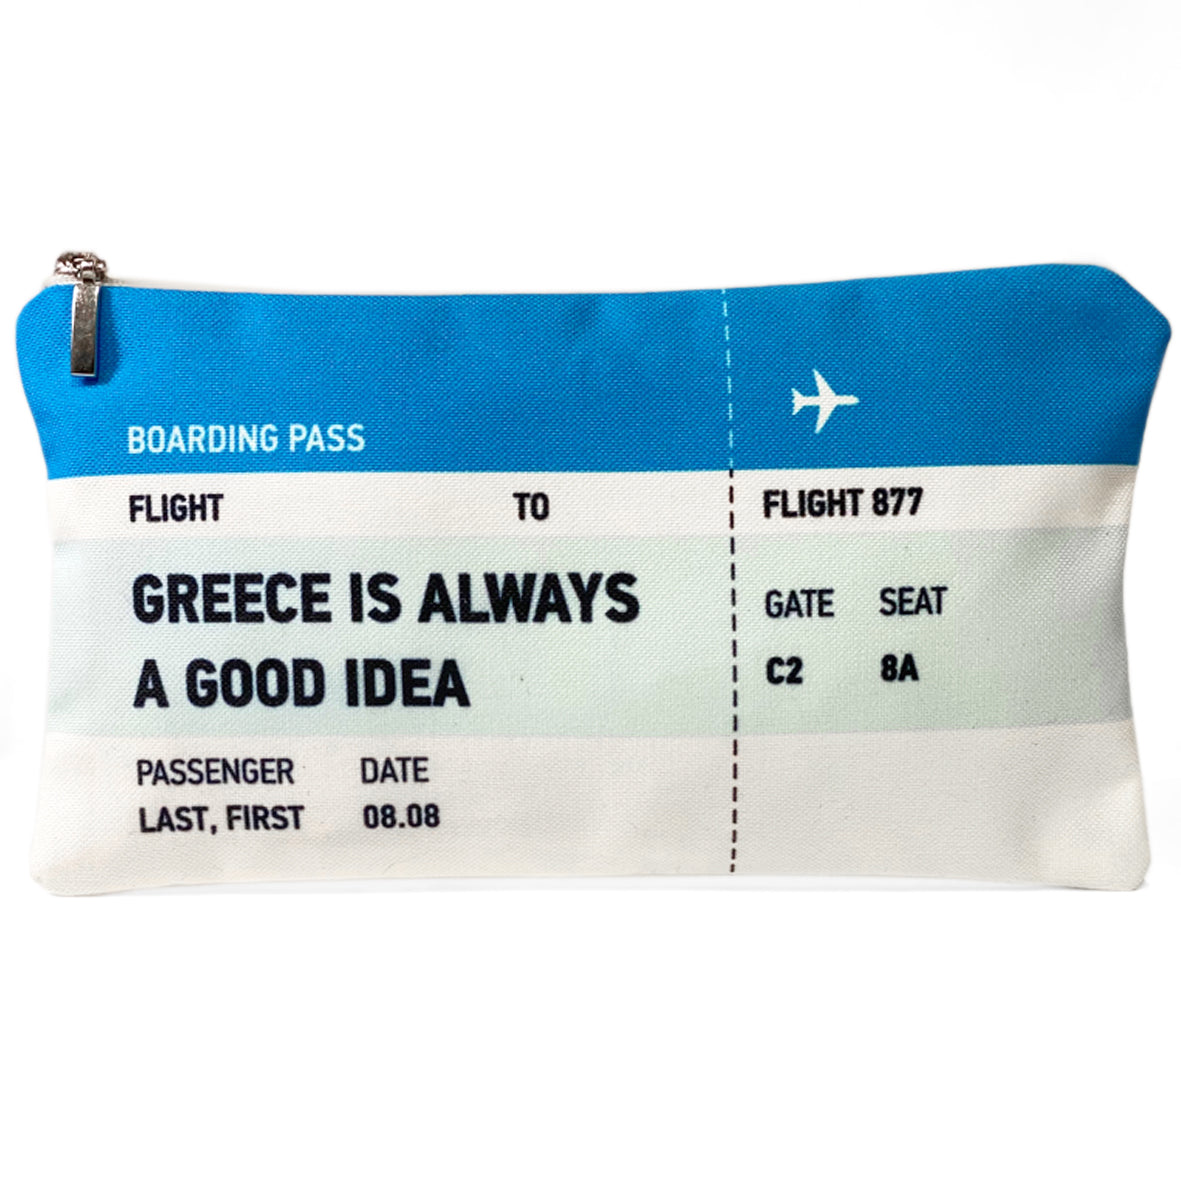 Greece is always a good idea ticket bag